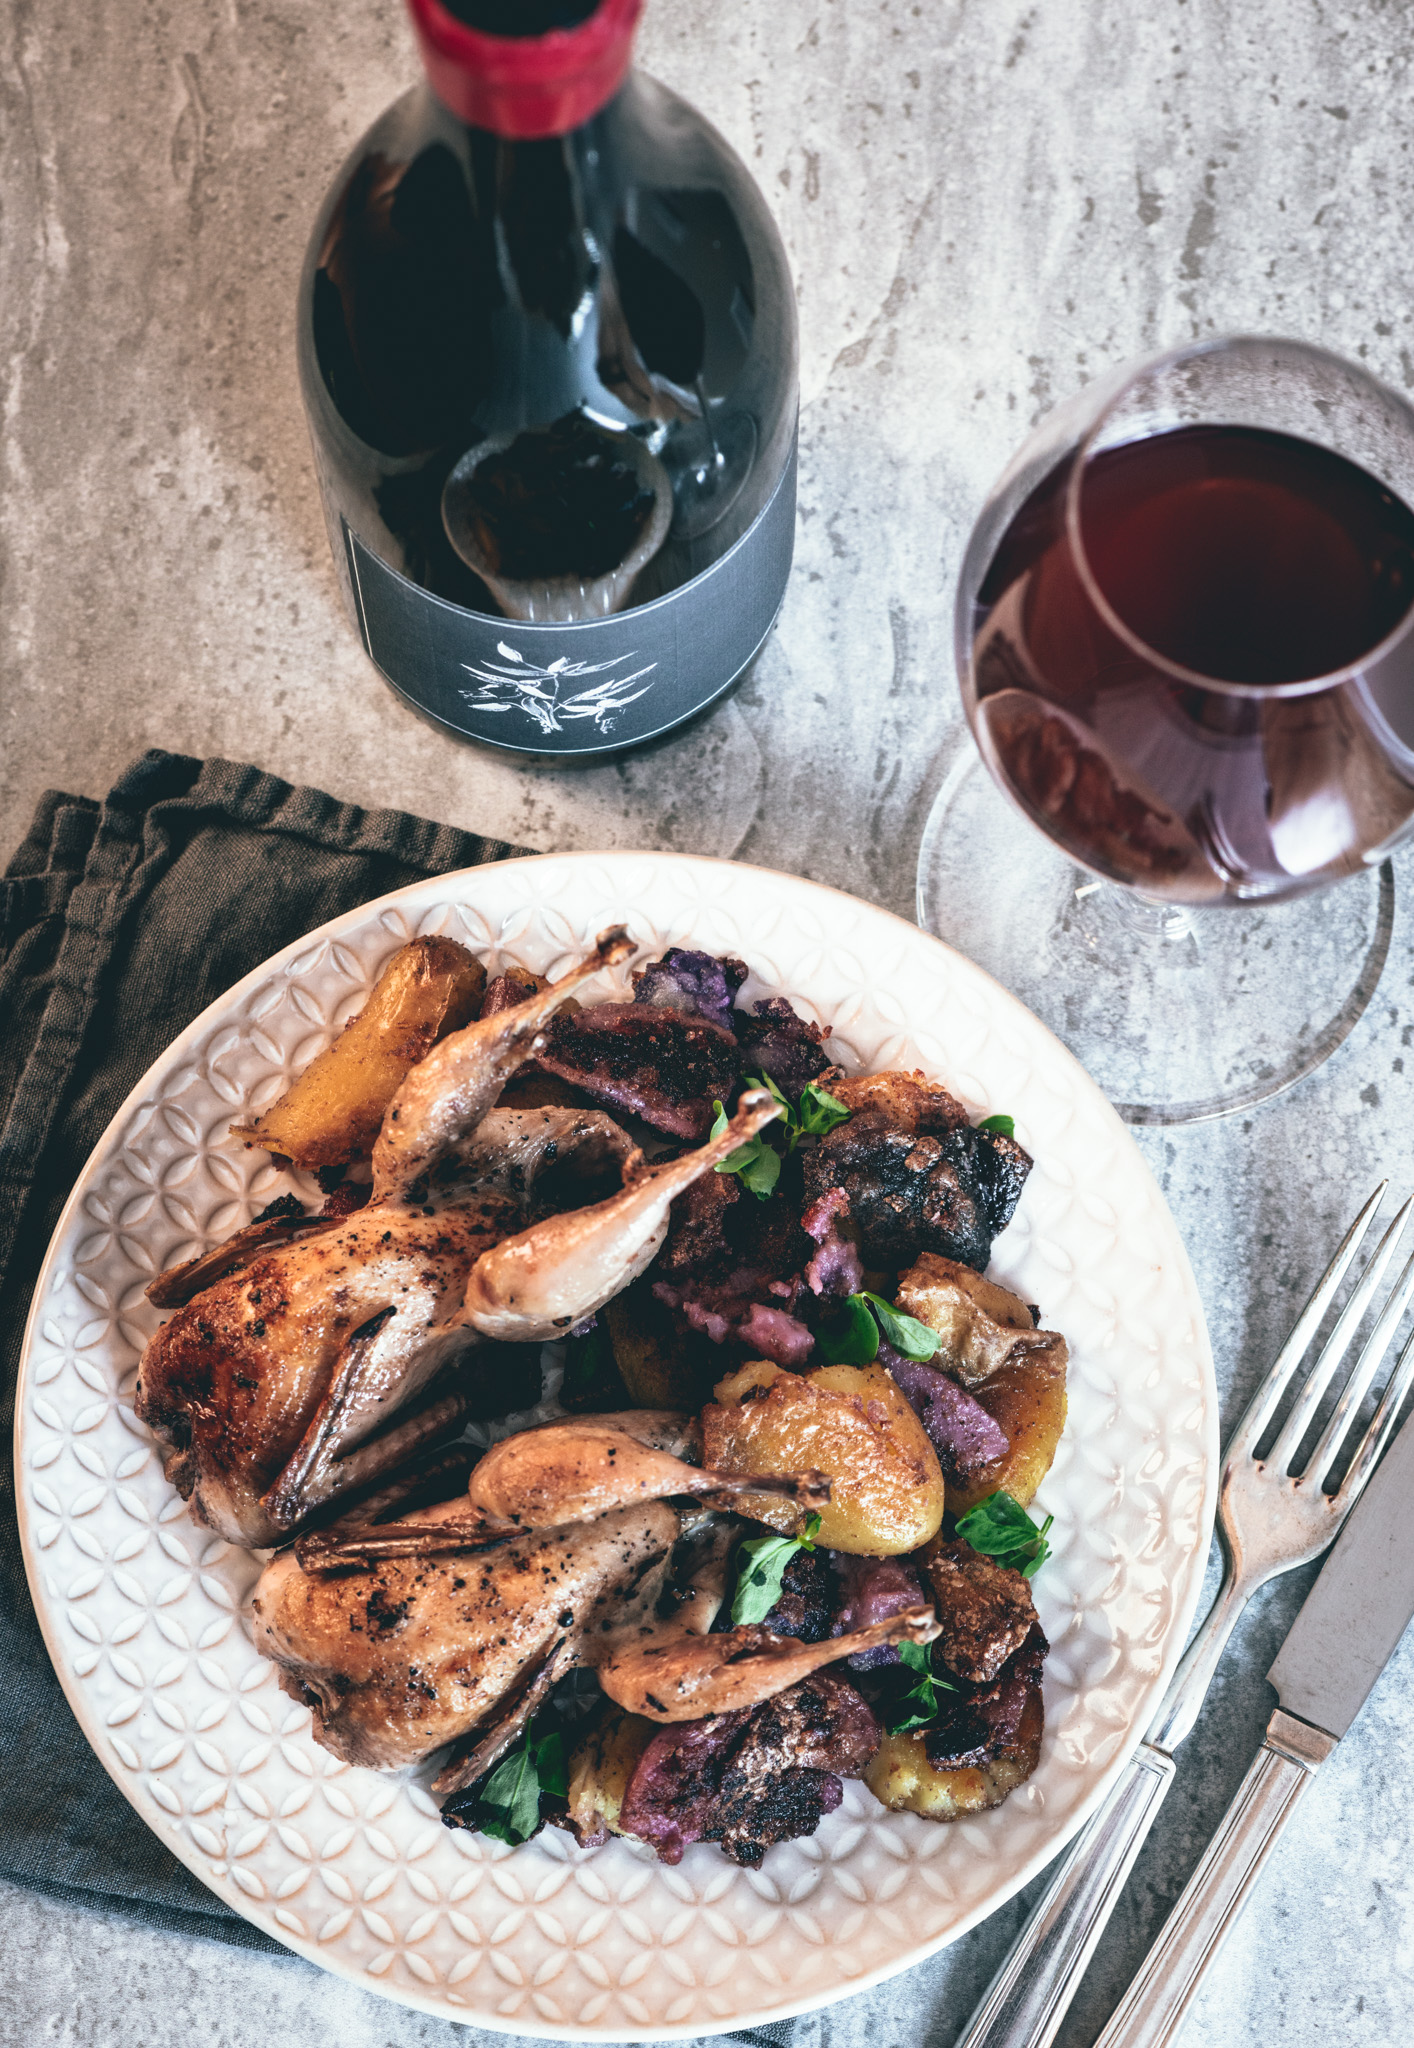 In the spirit of northern California  : Quail, crispy cast iron potatoes and garlic, snow pea micro greens : pair with light-bodied North Coast reds (2016 Arnot-Roberts Trousseau pictured here)